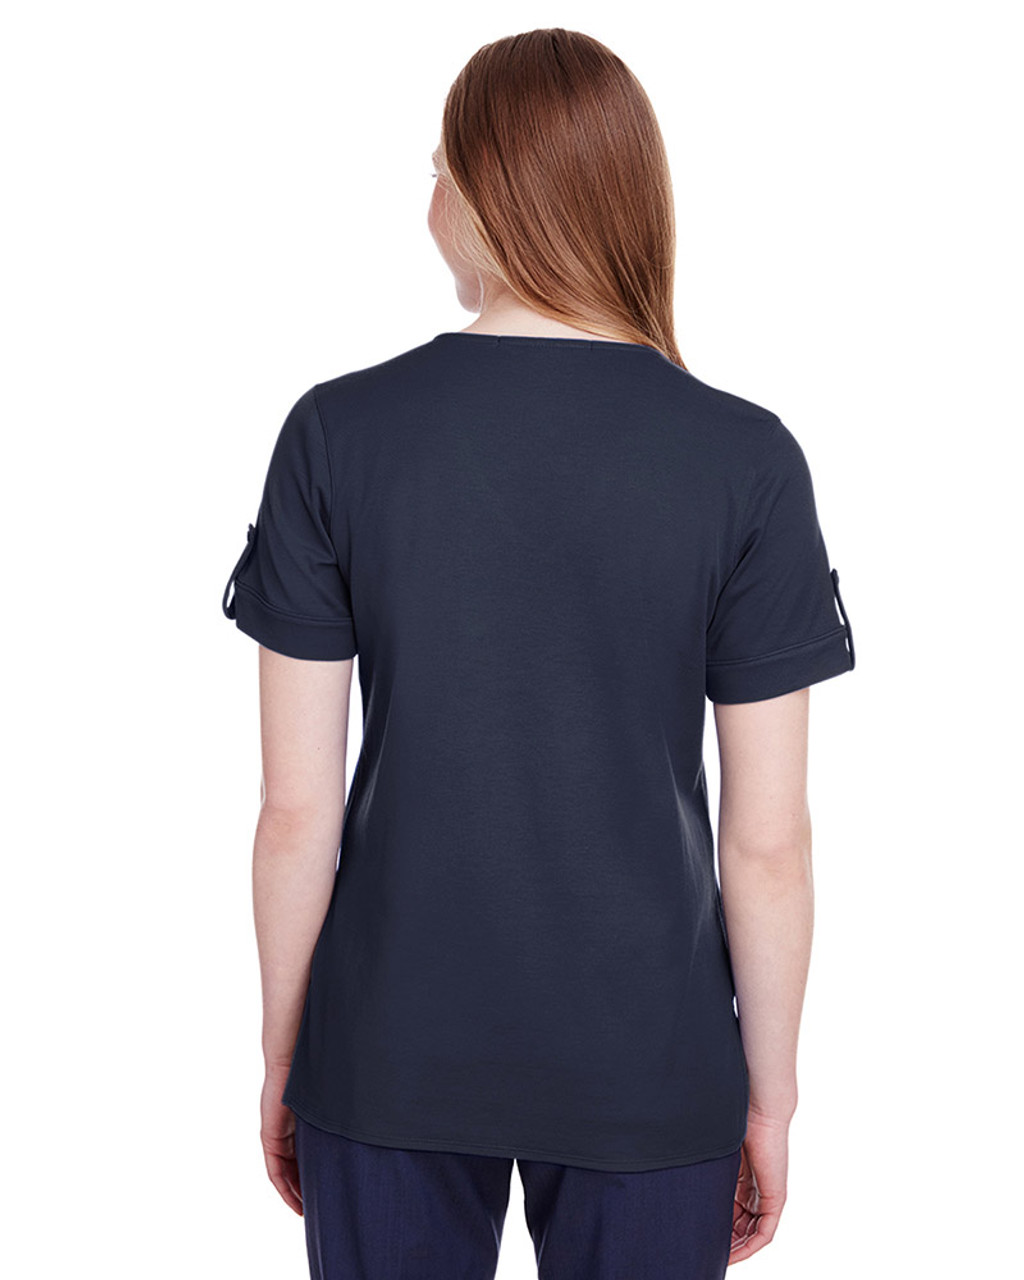 Navy - back, DG20WB Devon & Jones Ladies' CrownLux Performance™ Plaited Rolled-Sleeve Top | Blankclothing.ca